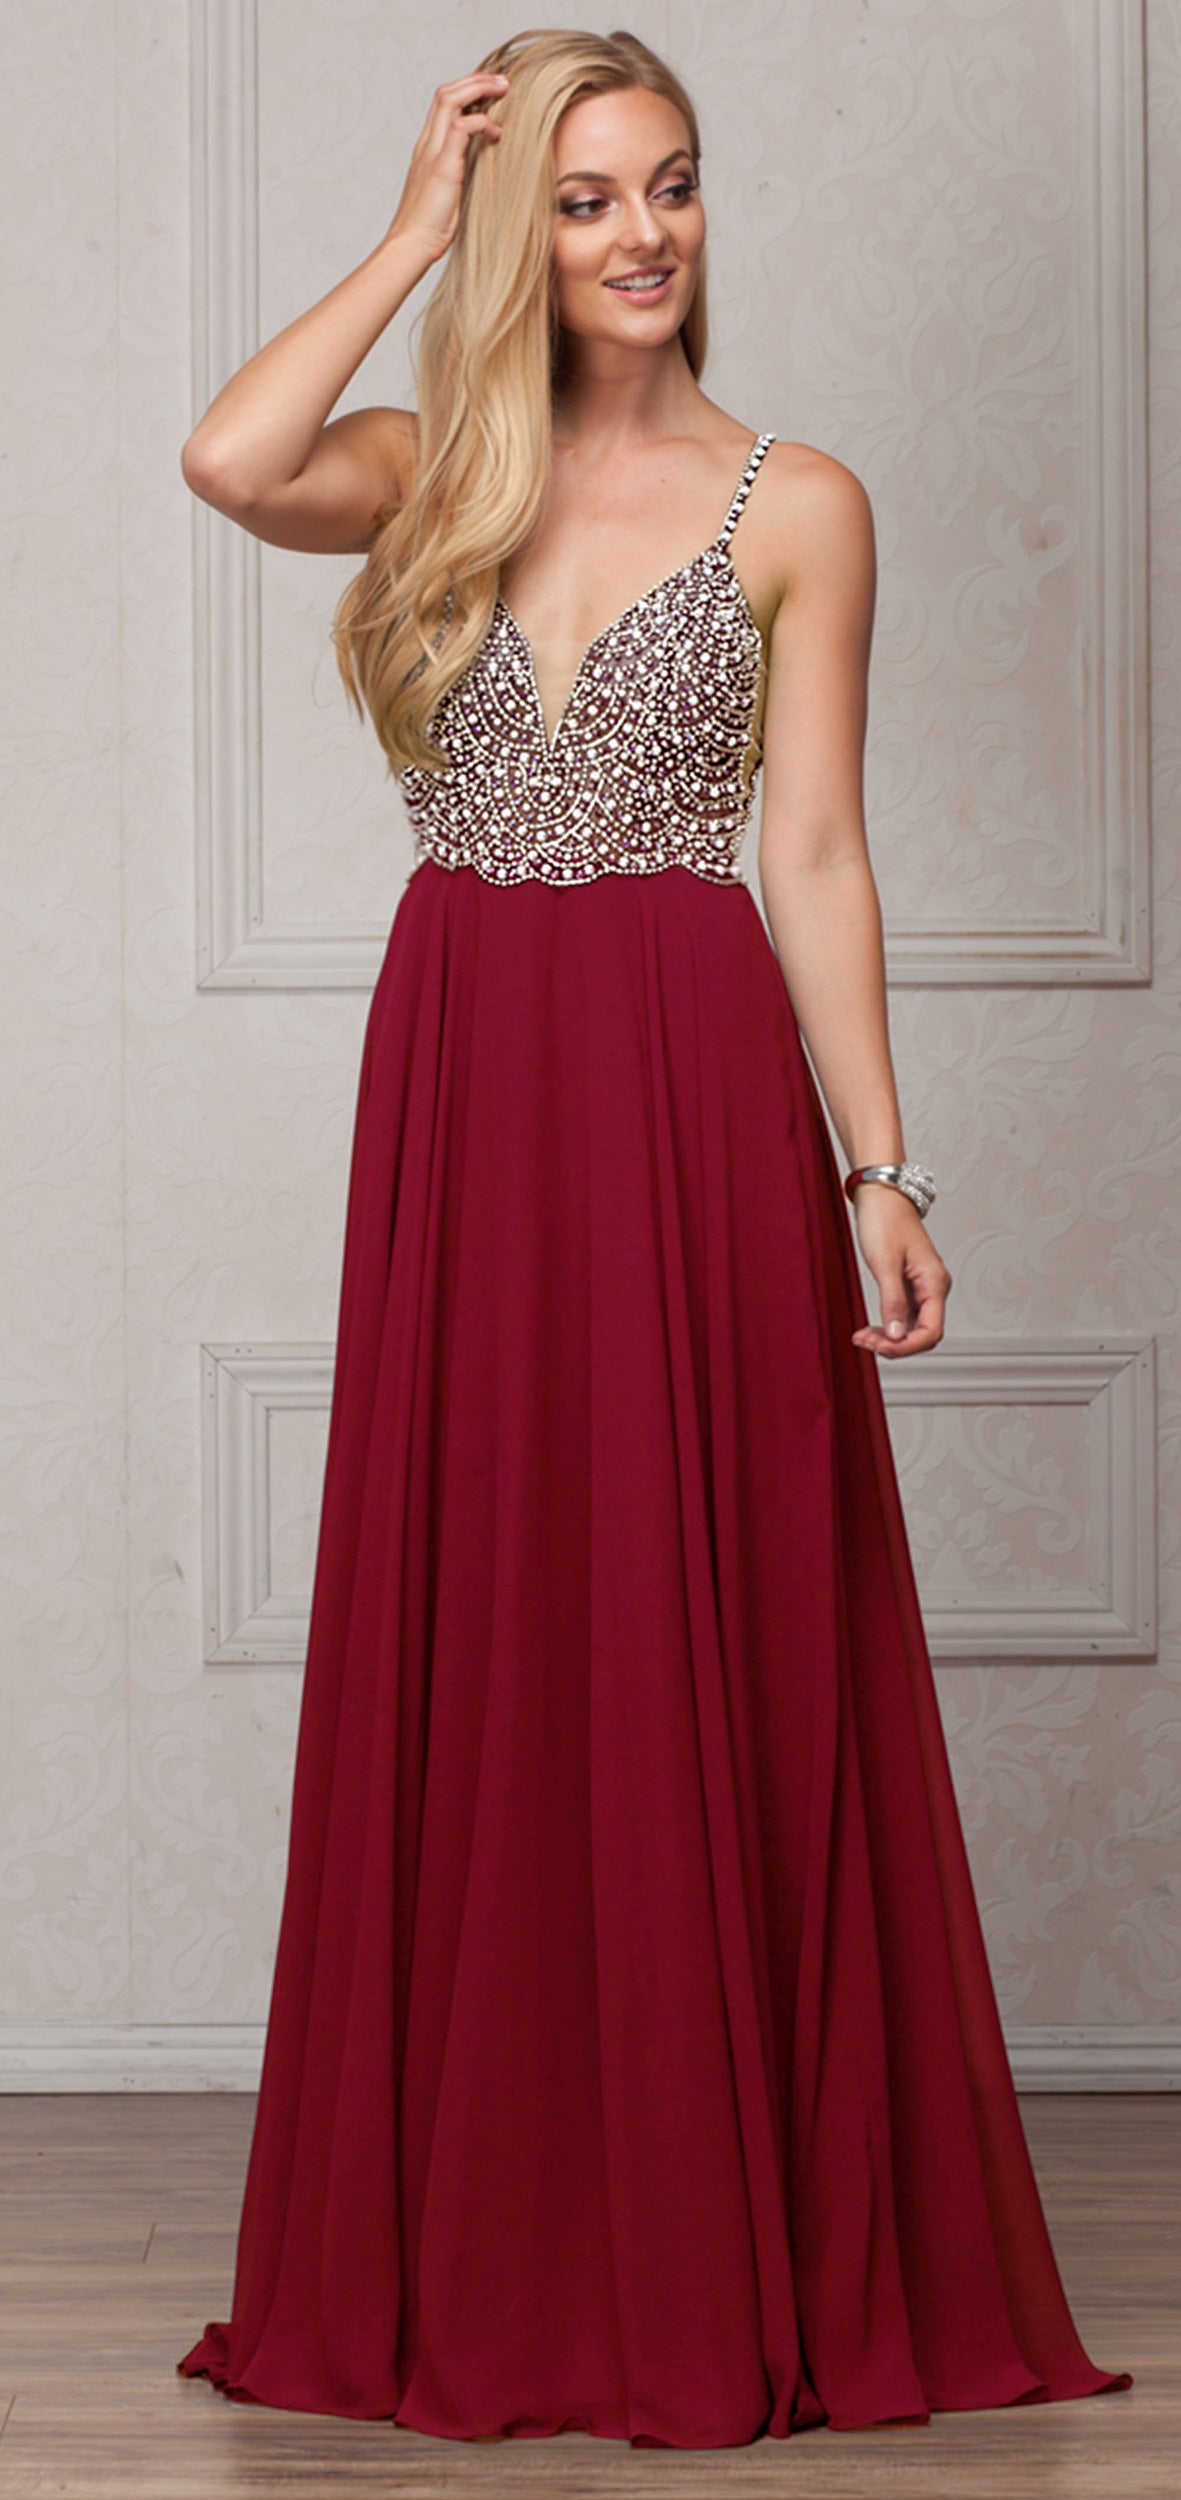 Image of Bejeweled Bodice V-neck Spaghetti Straps Formal Prom Dress in Burgundy